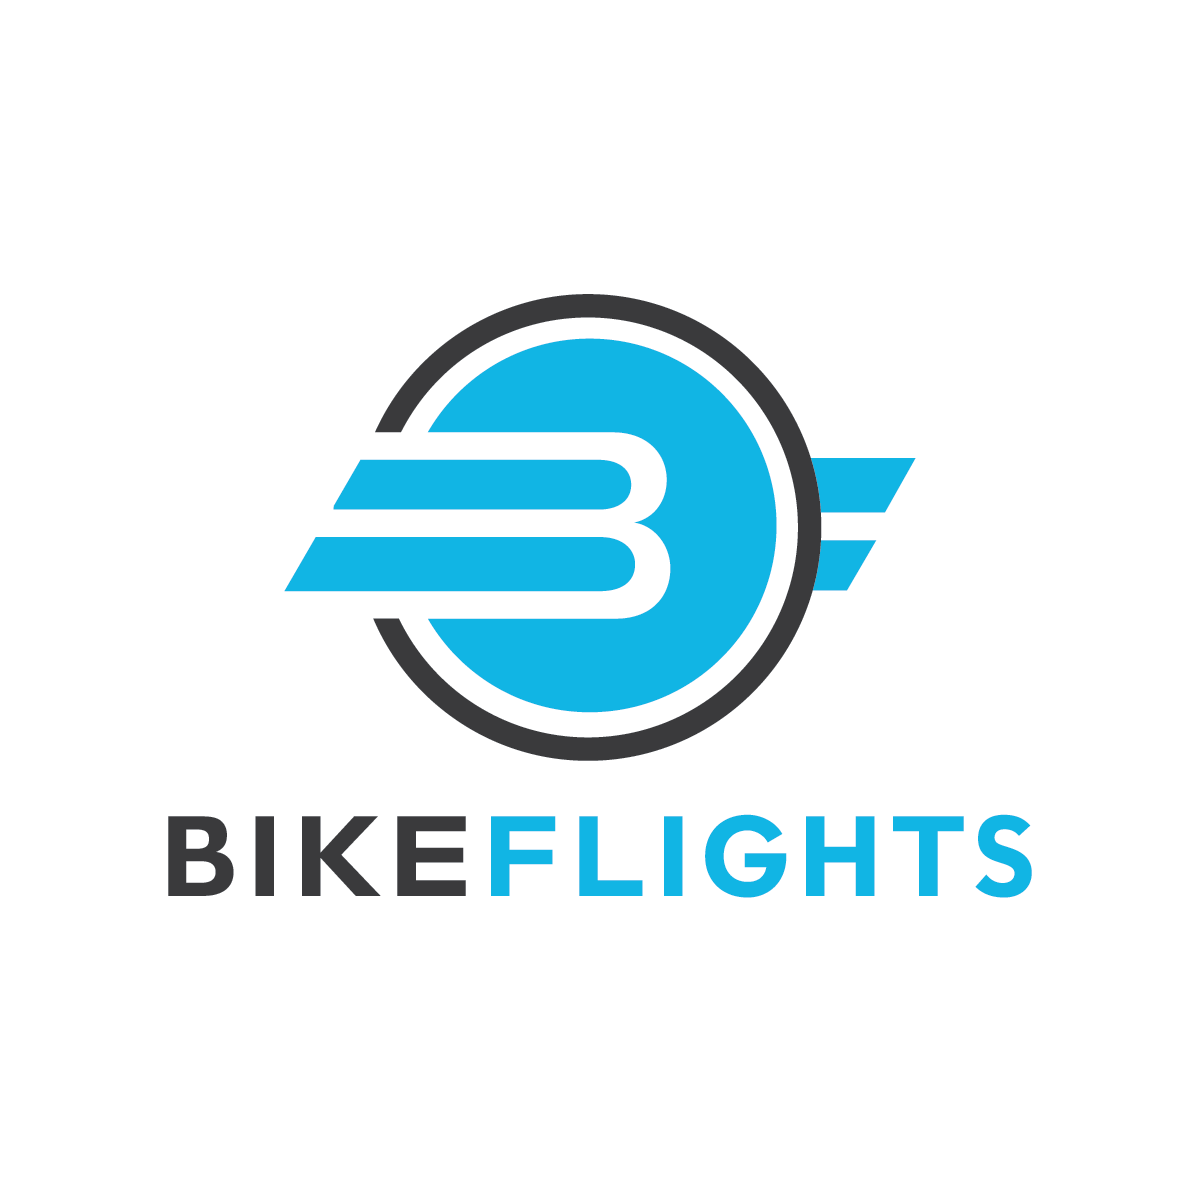 bf-logo-full-color-stacked-white-background.png